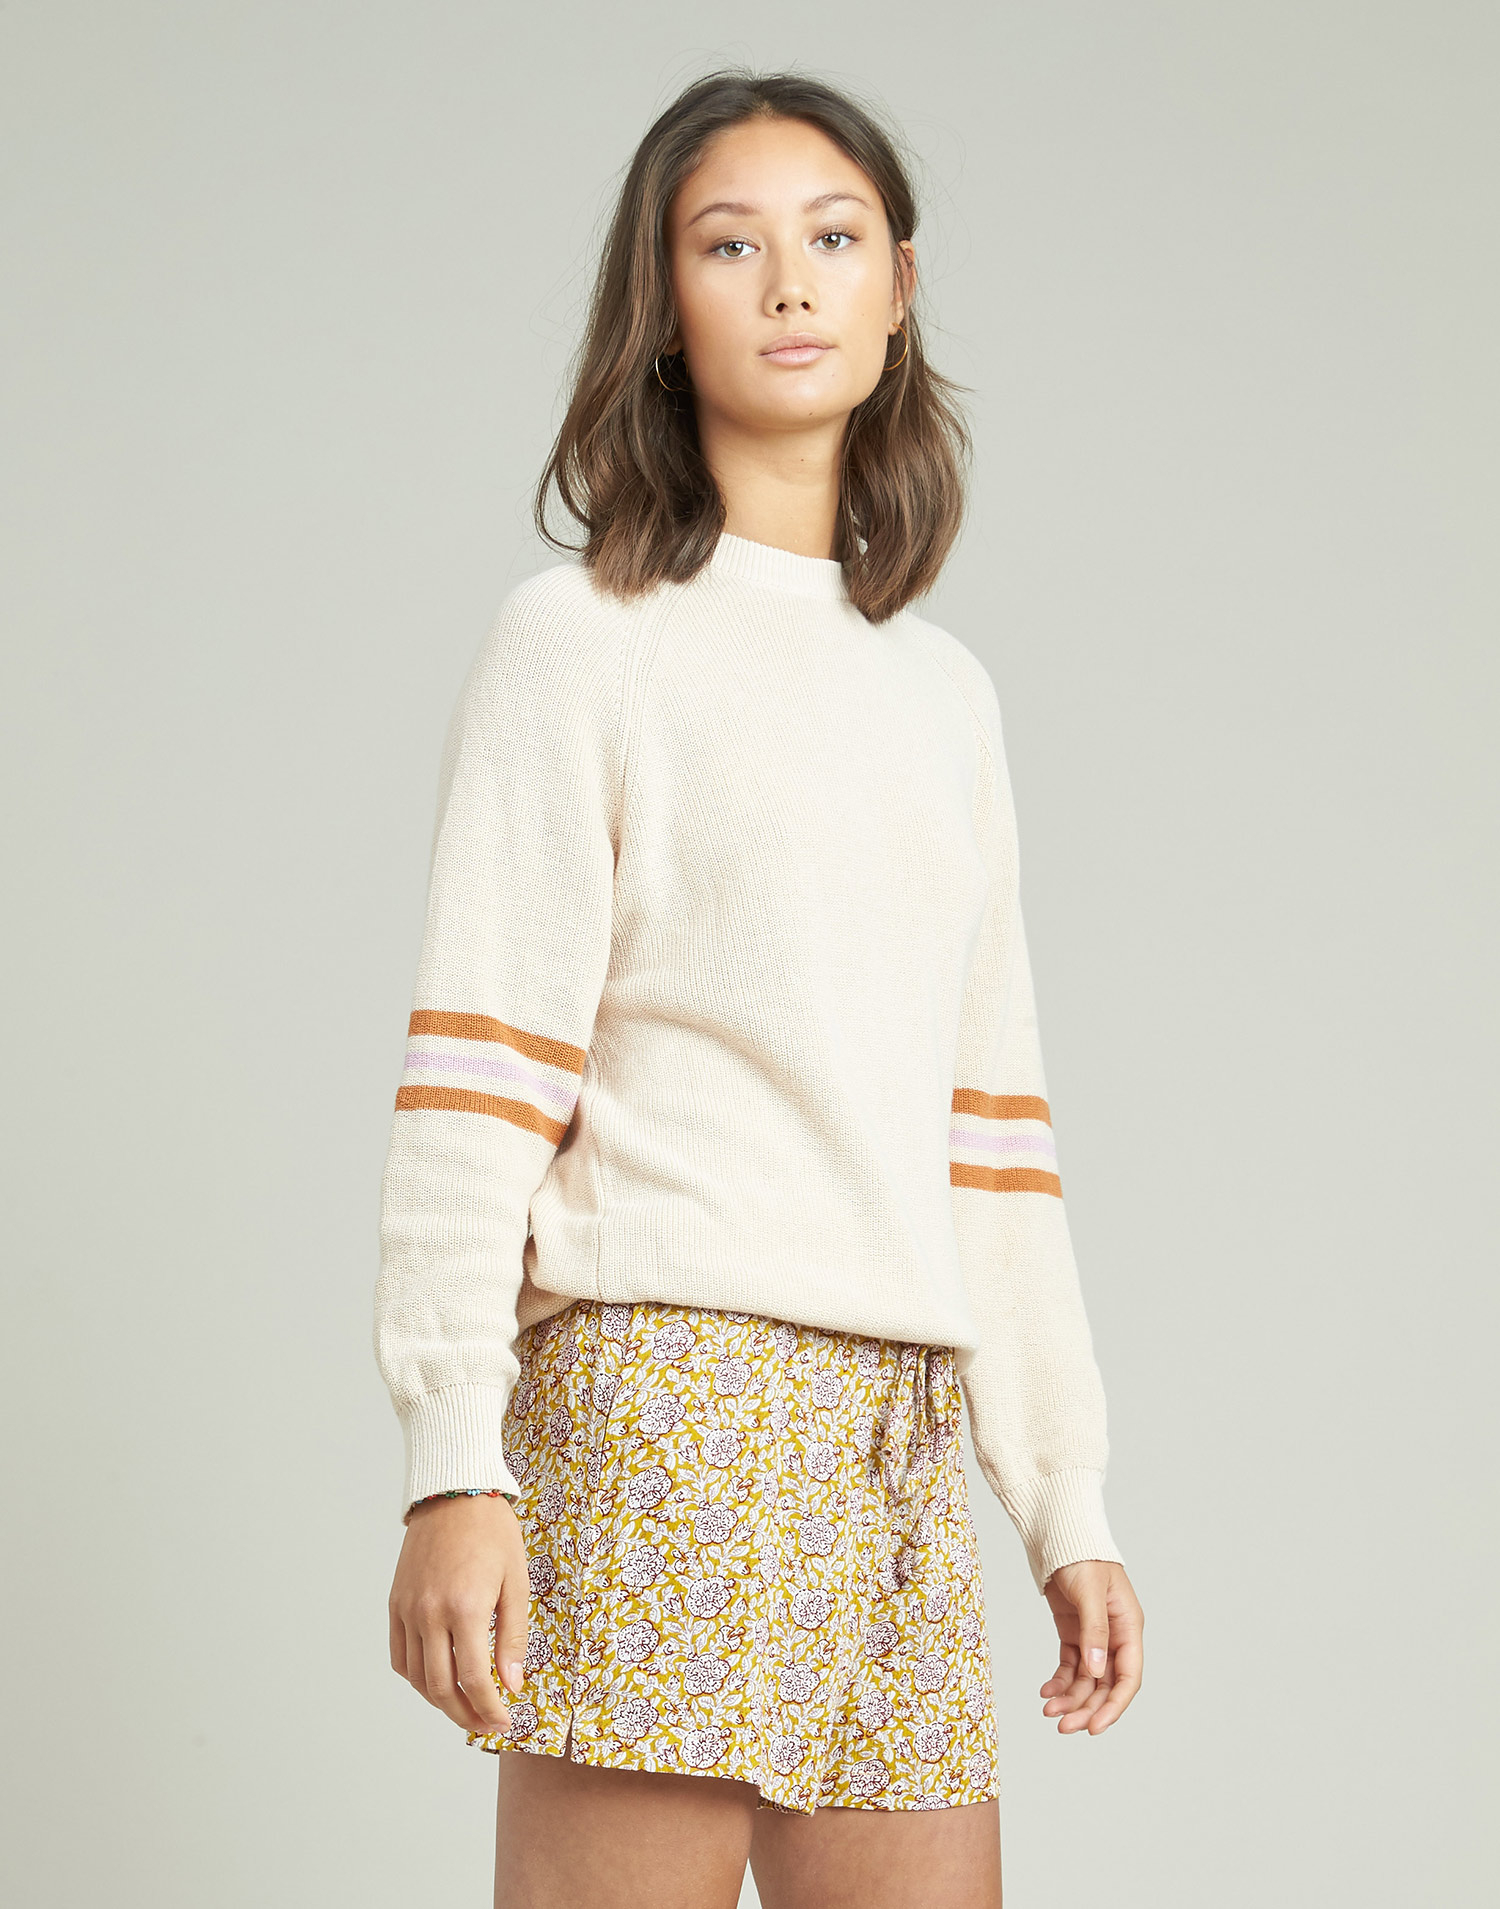 Sweater with stripes at sleeves and hem